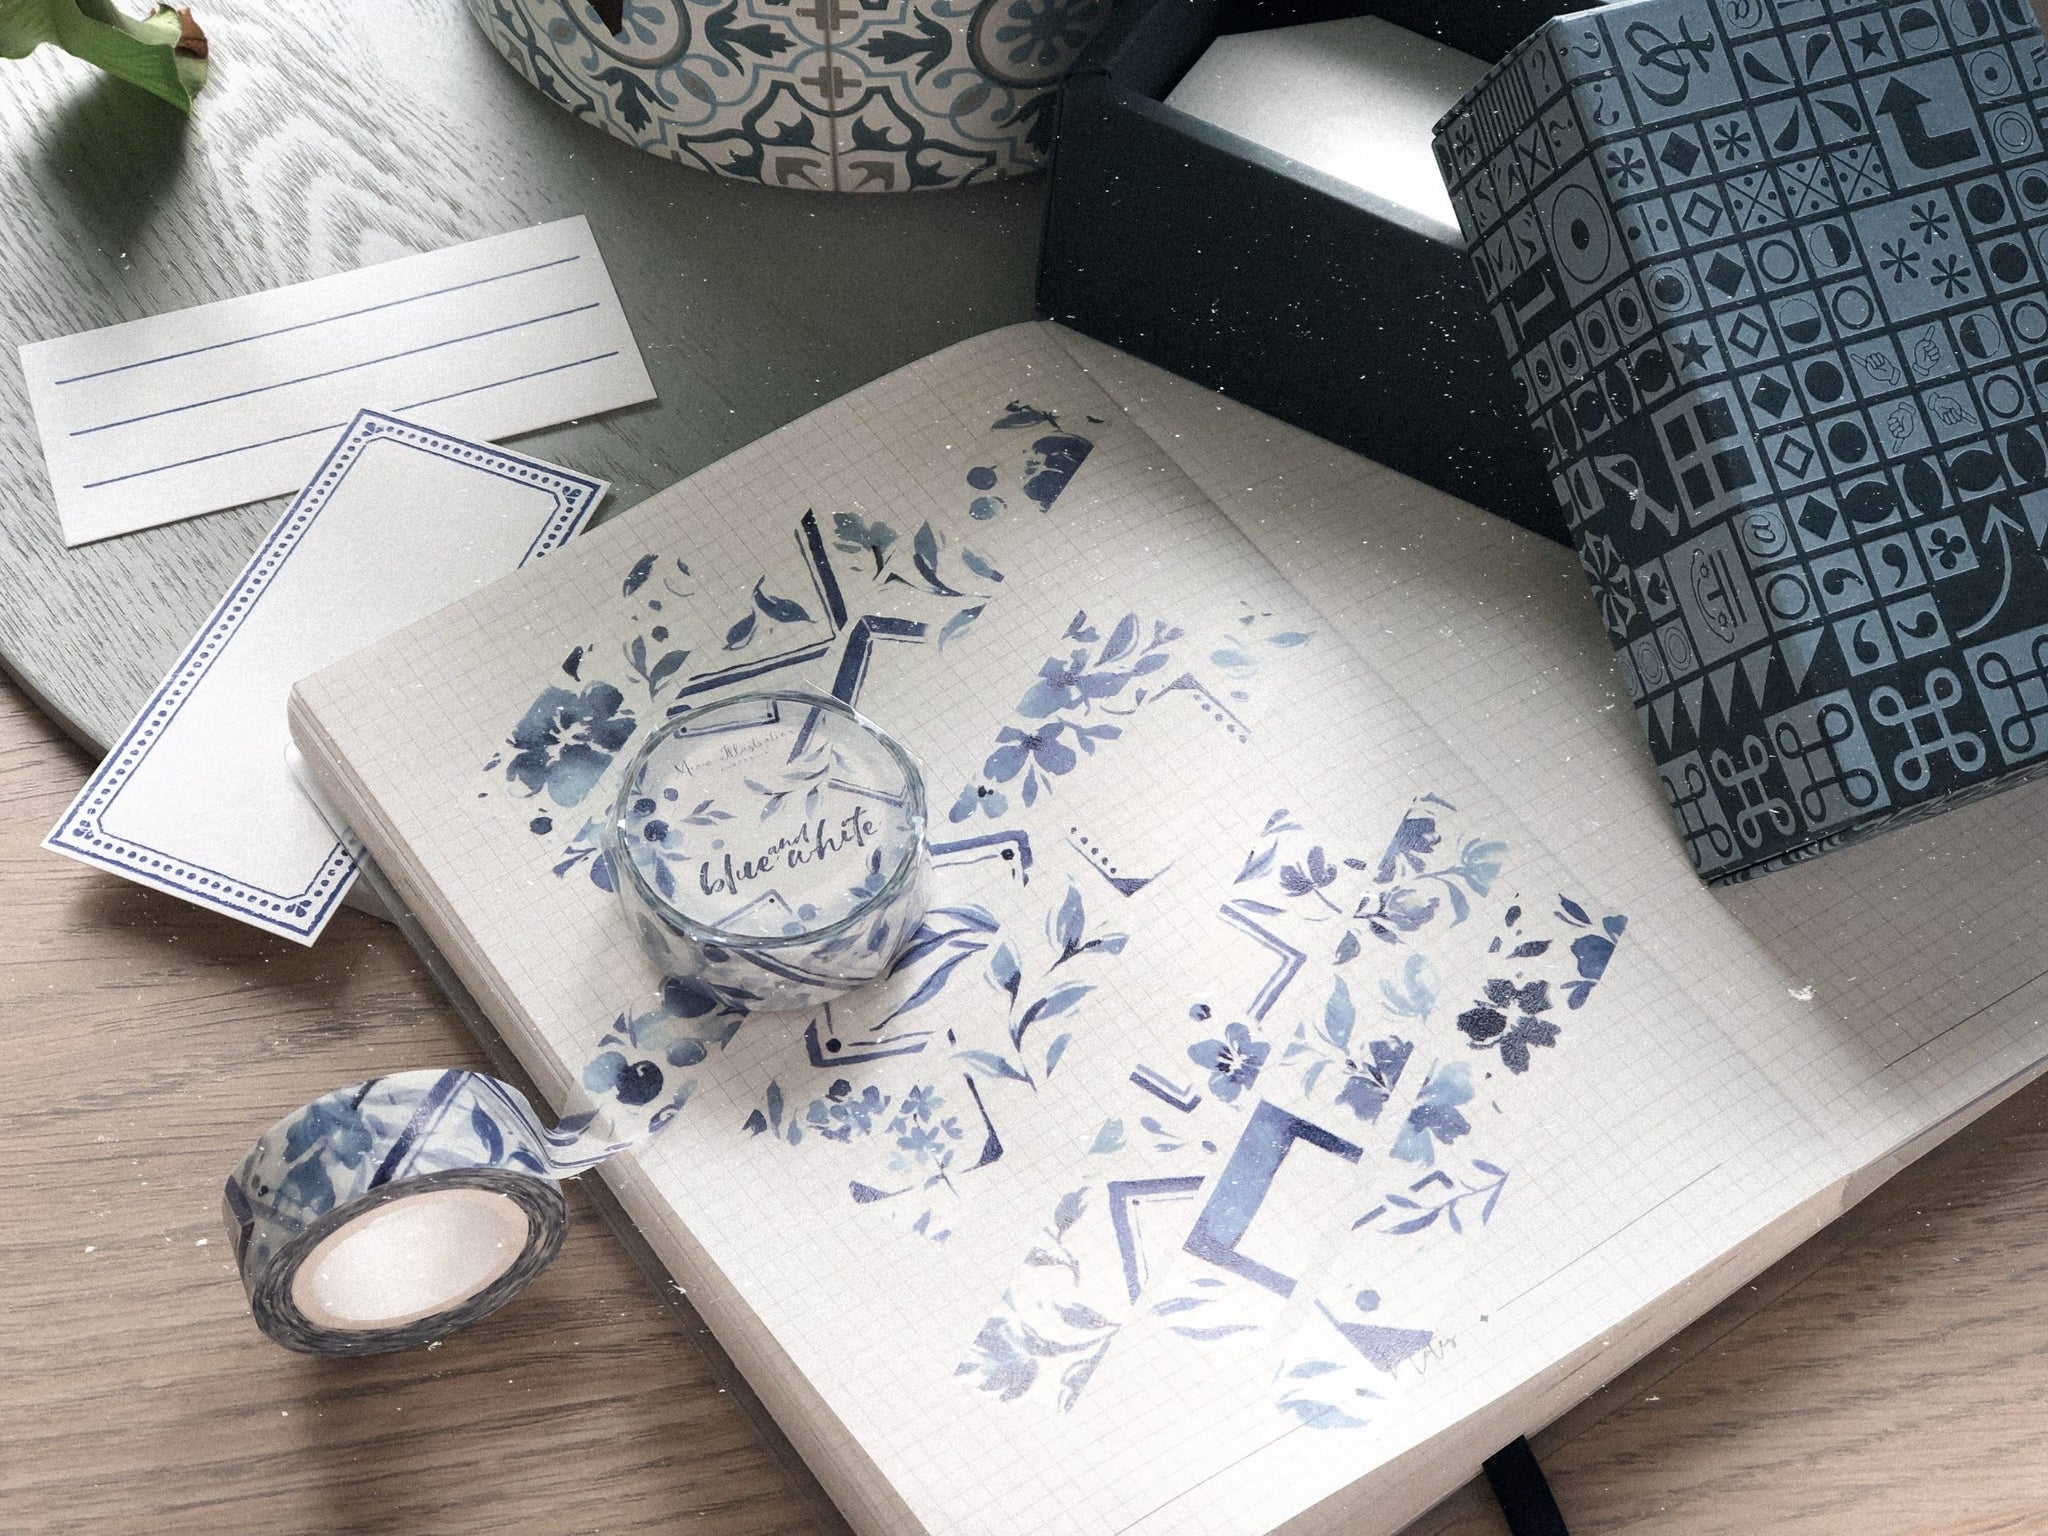 Meow Illustration Washi Tape - Blue & White